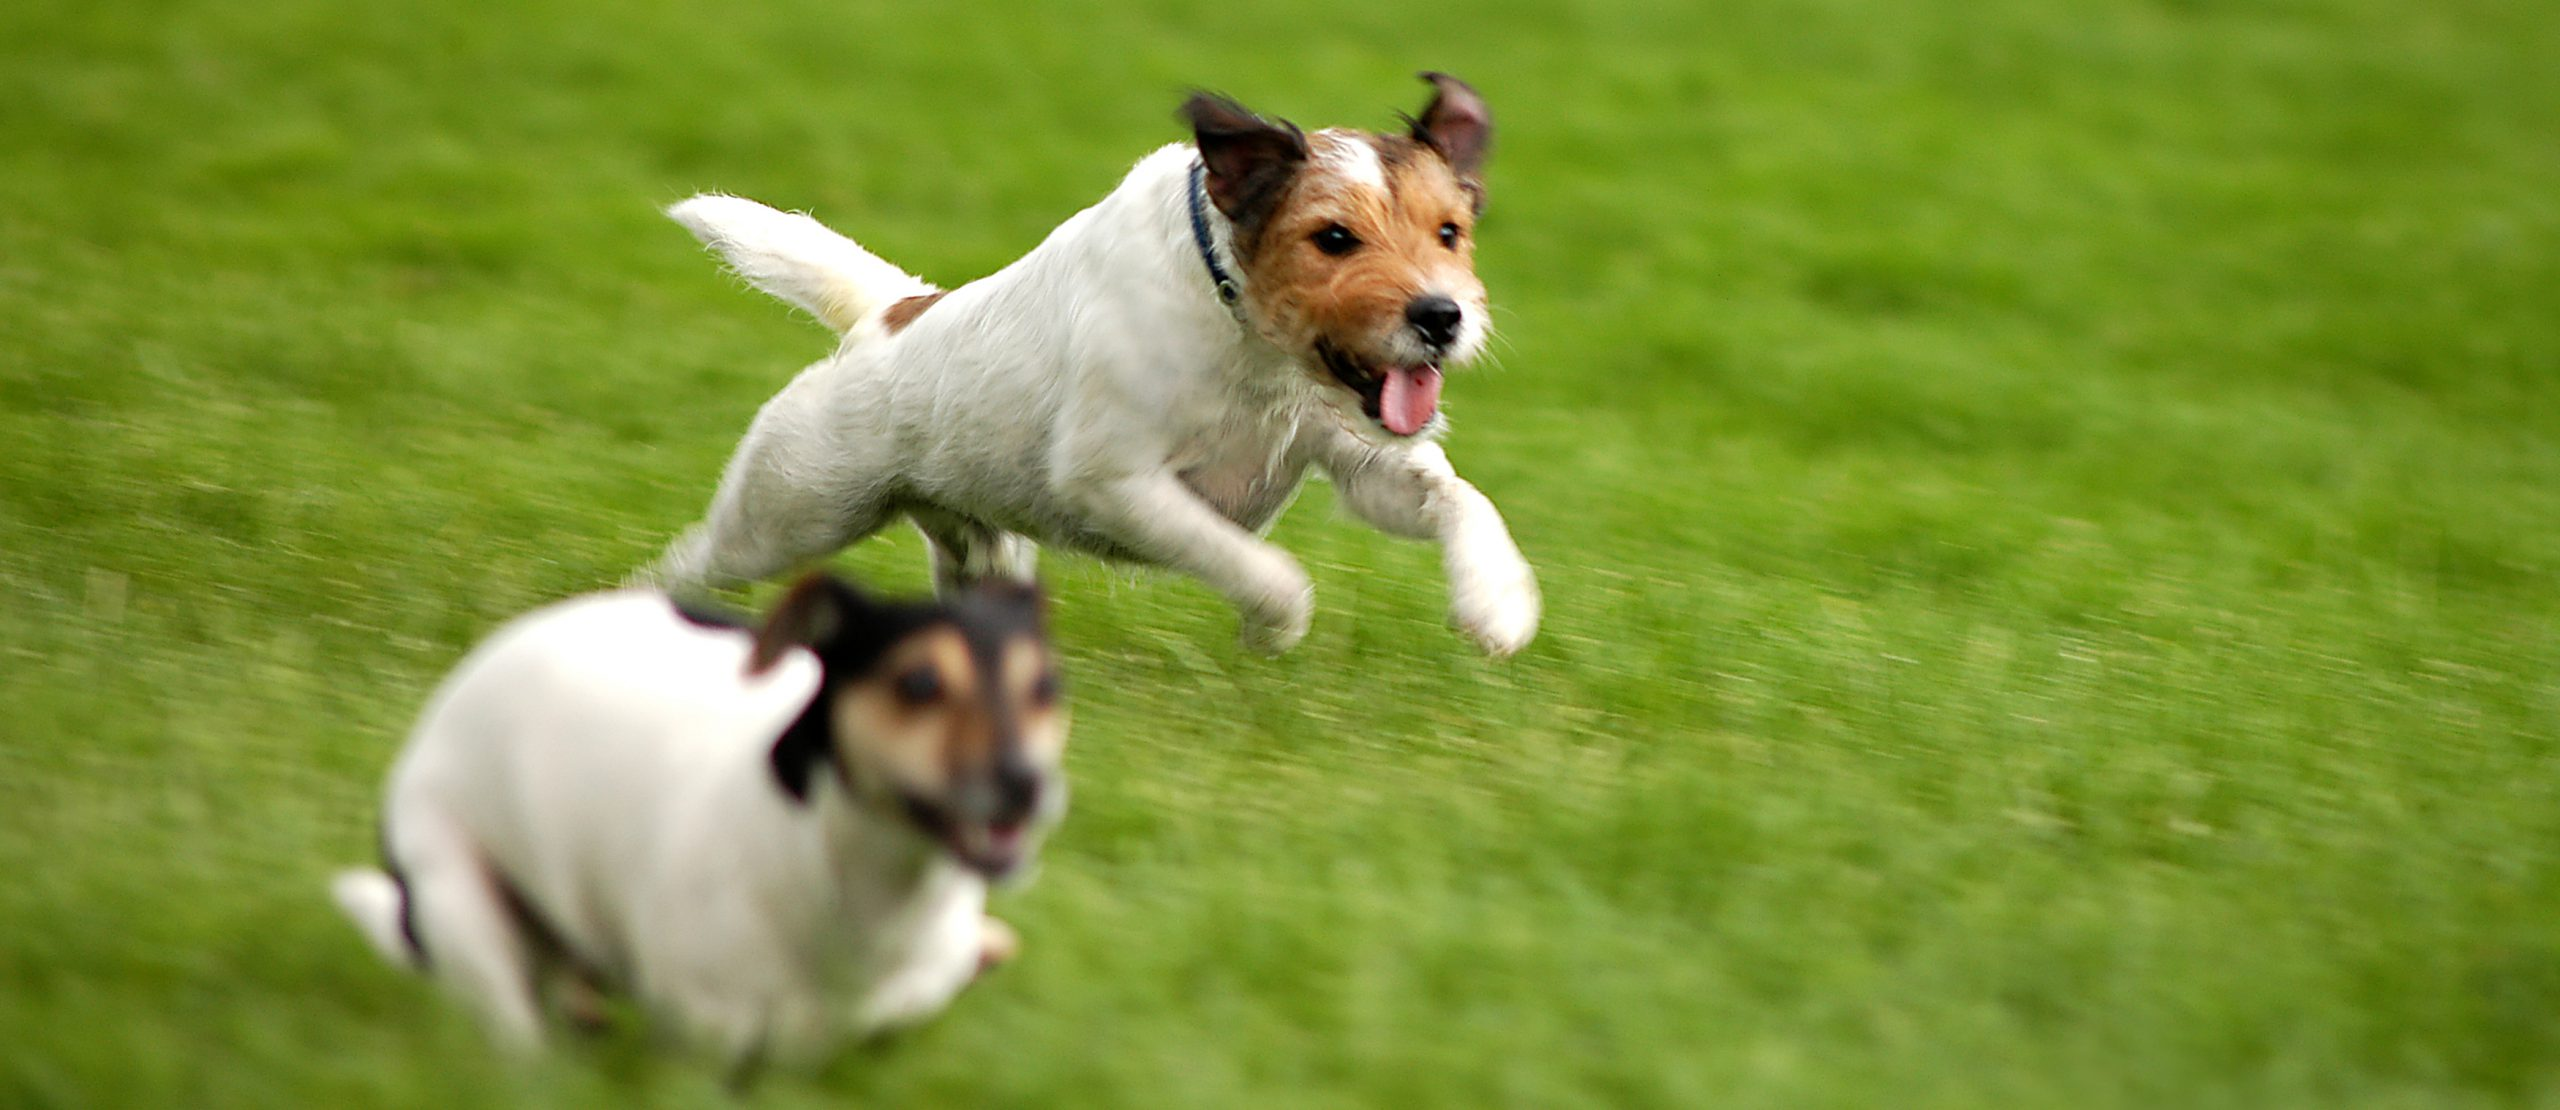 Two Jack Russell Terriers running across a field